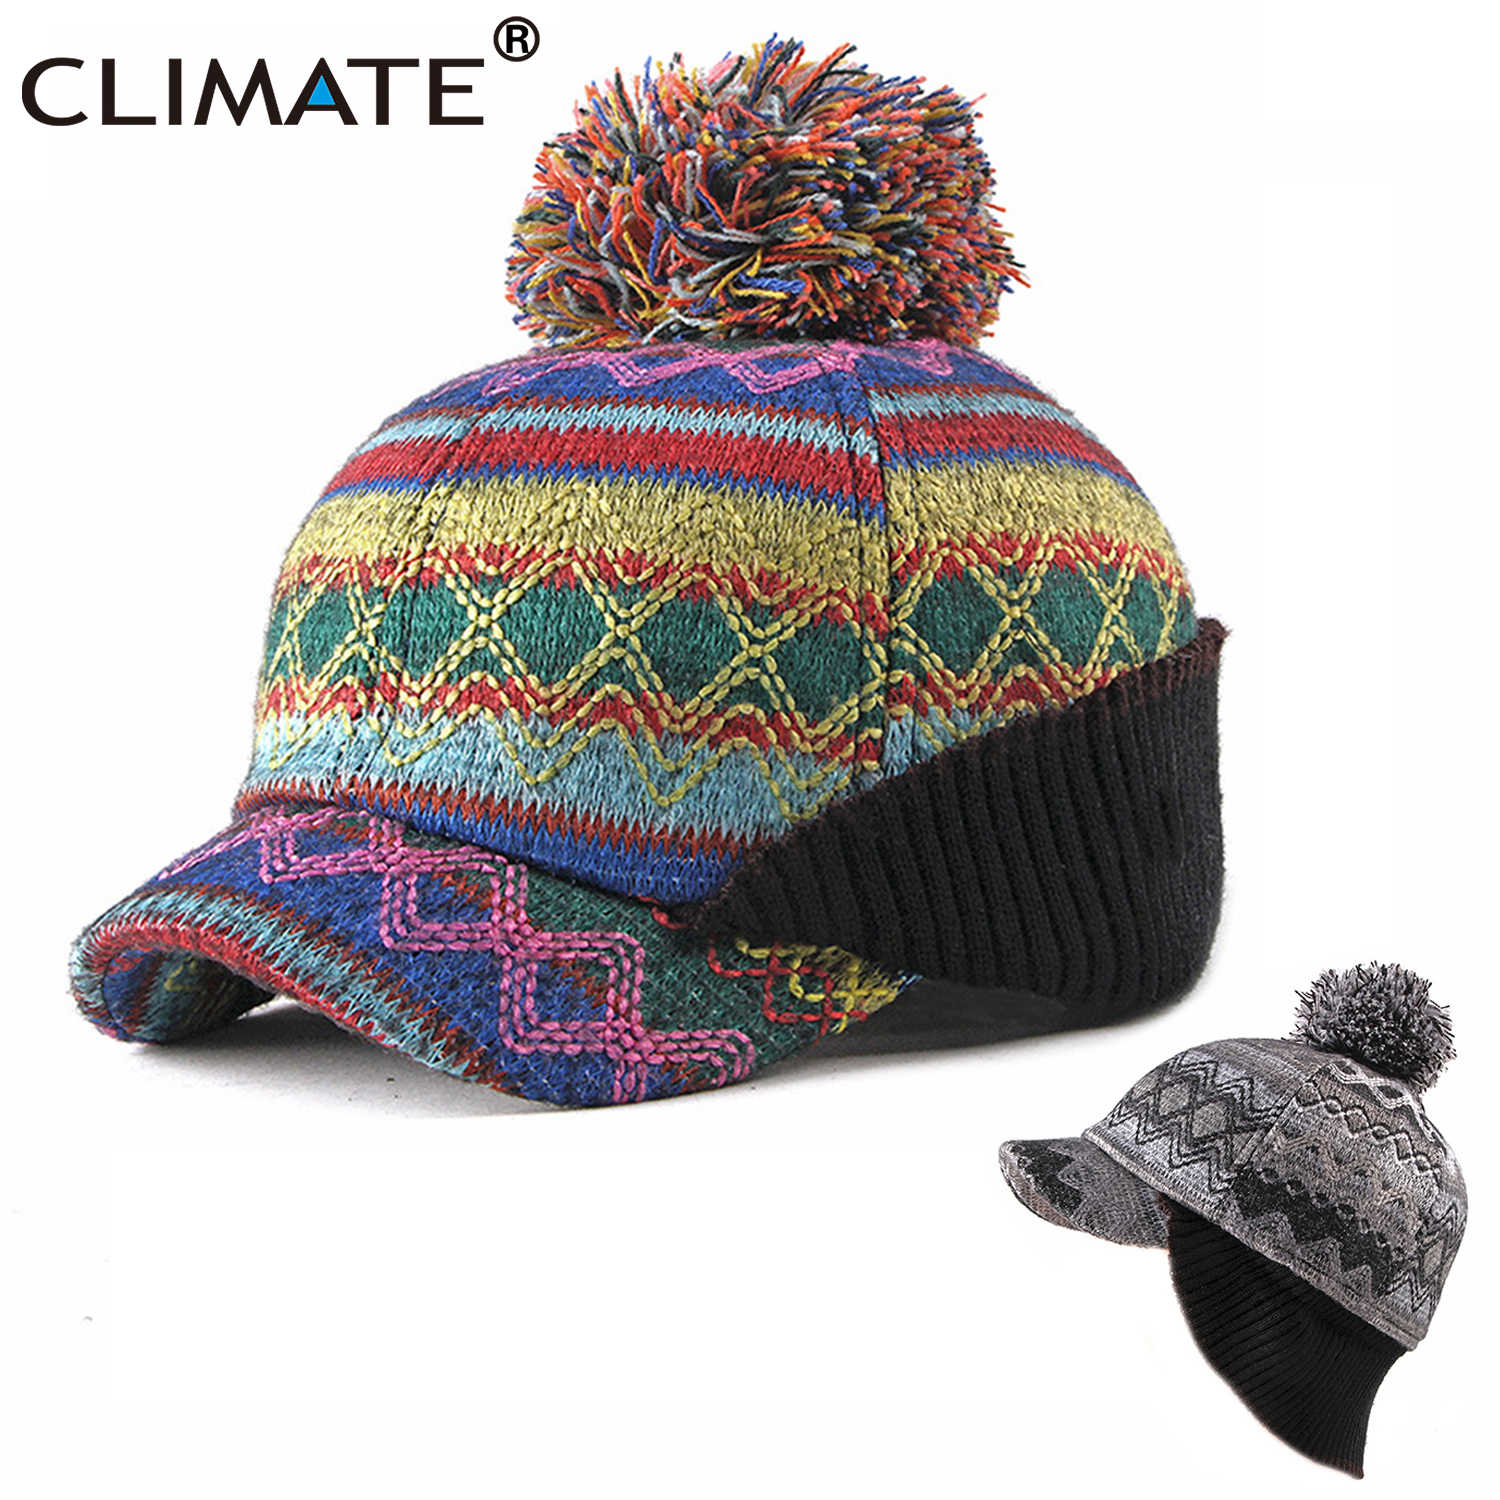 86d3d5a4c1365 CLIMATE Pompom Hat for Women Winter Lace Bomber Hat Ear Warmer Warm Russian  Hats Knitted Baseball